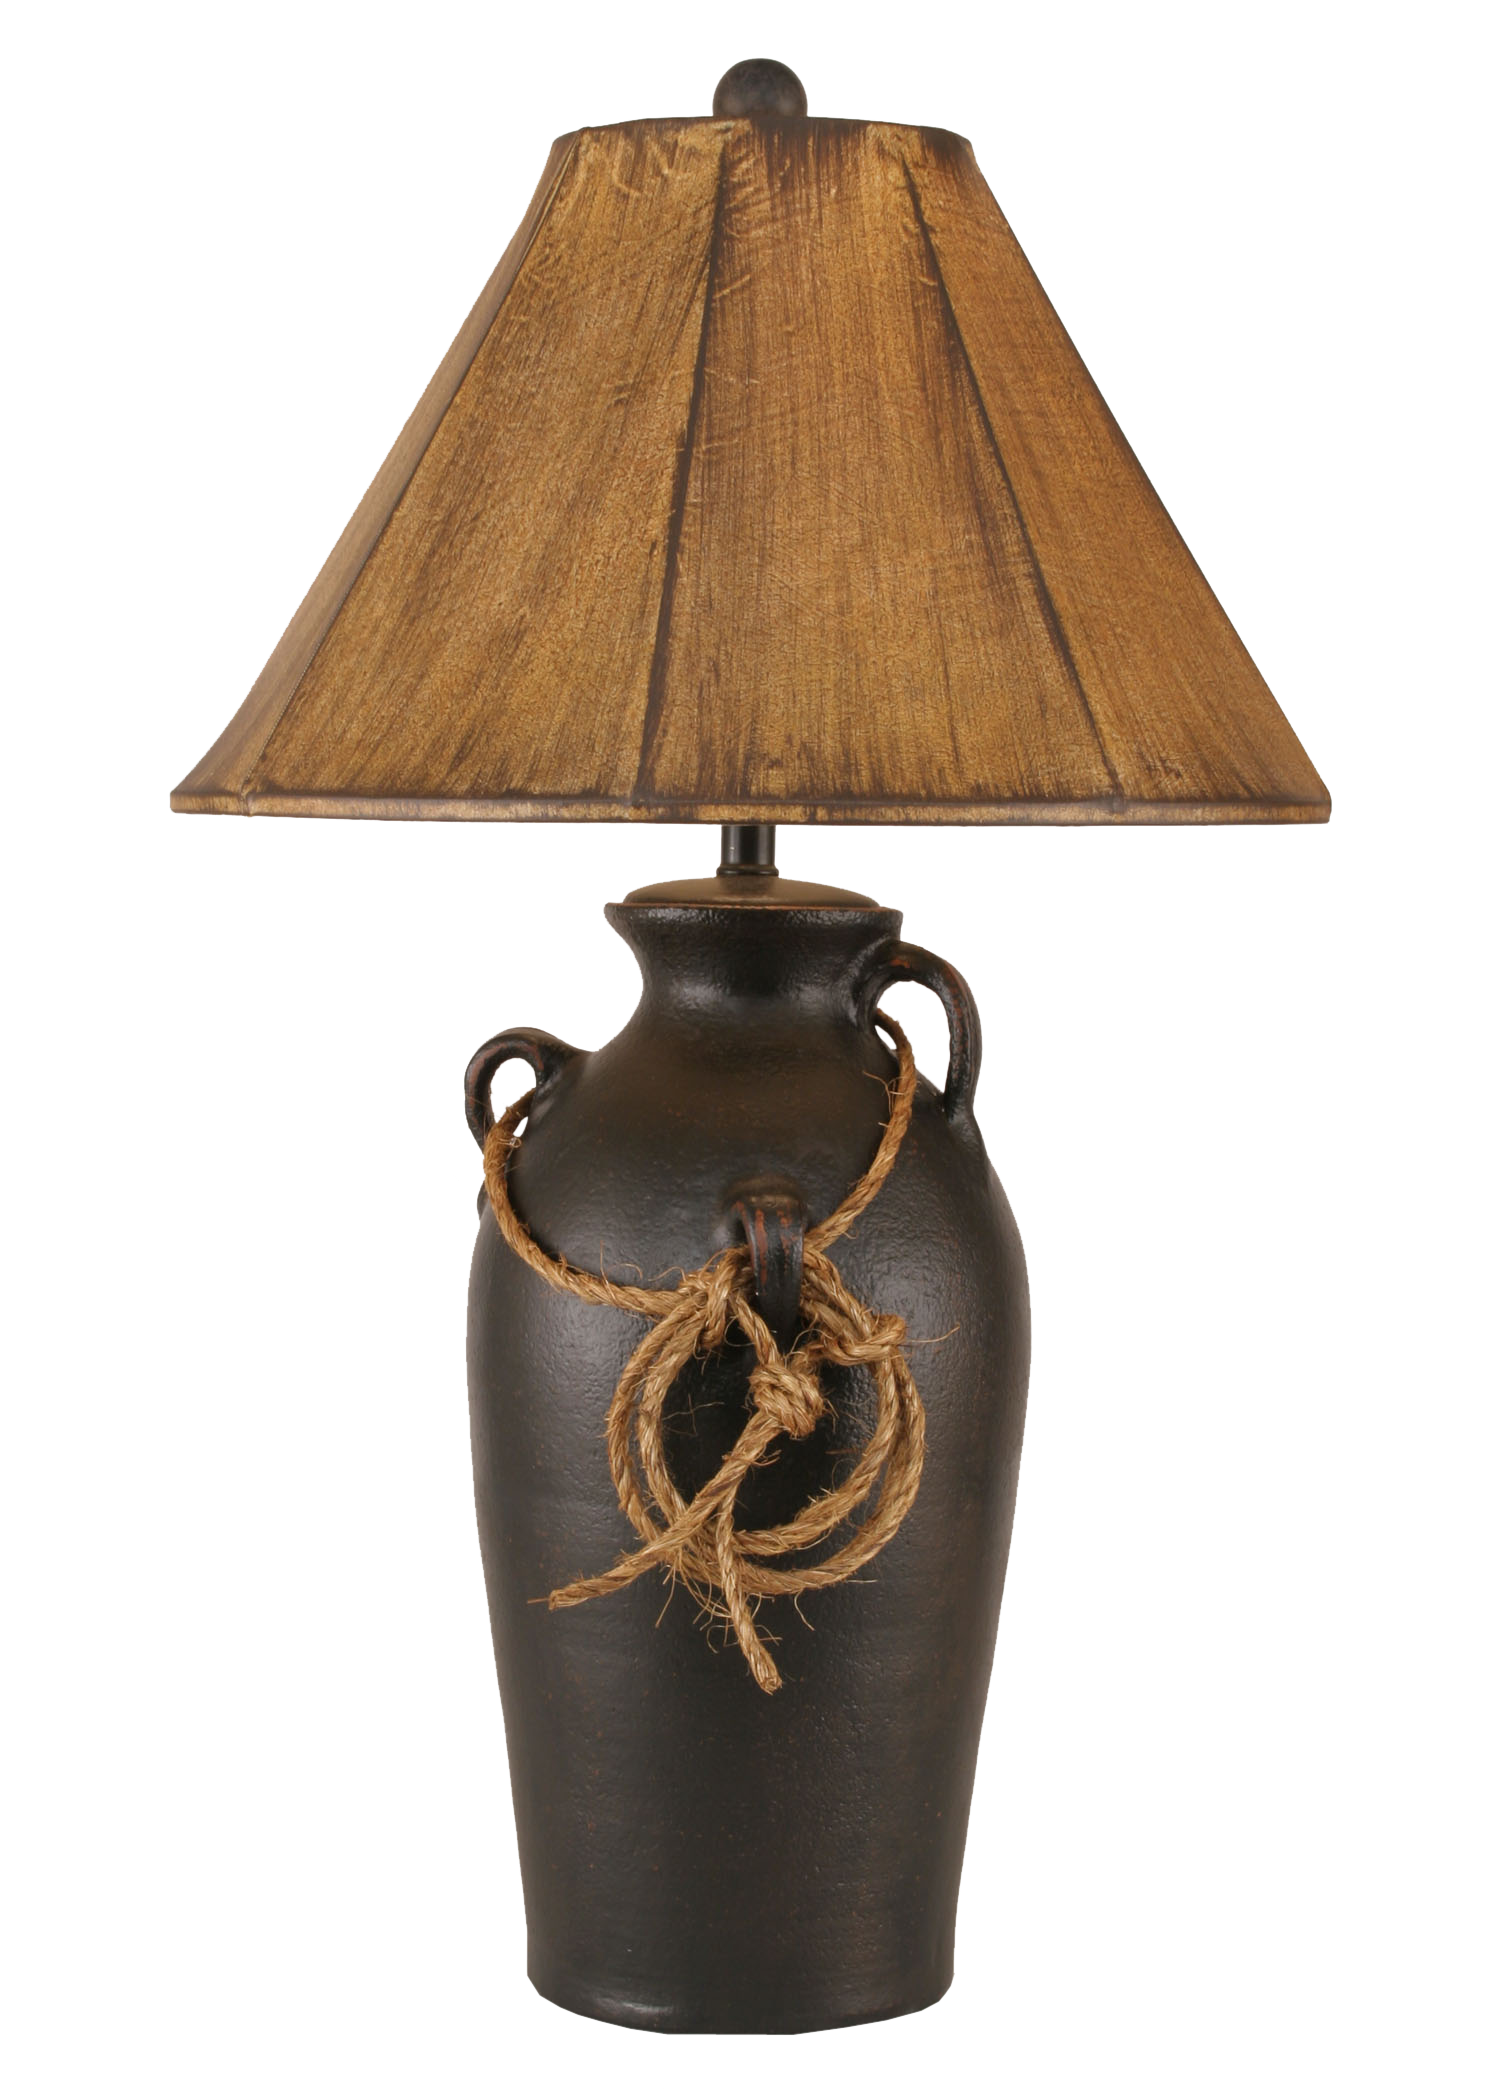 12R43A - 3 Handle Lasso - 30 Inch Western Table Lamp - ThunderHorseCabin.com